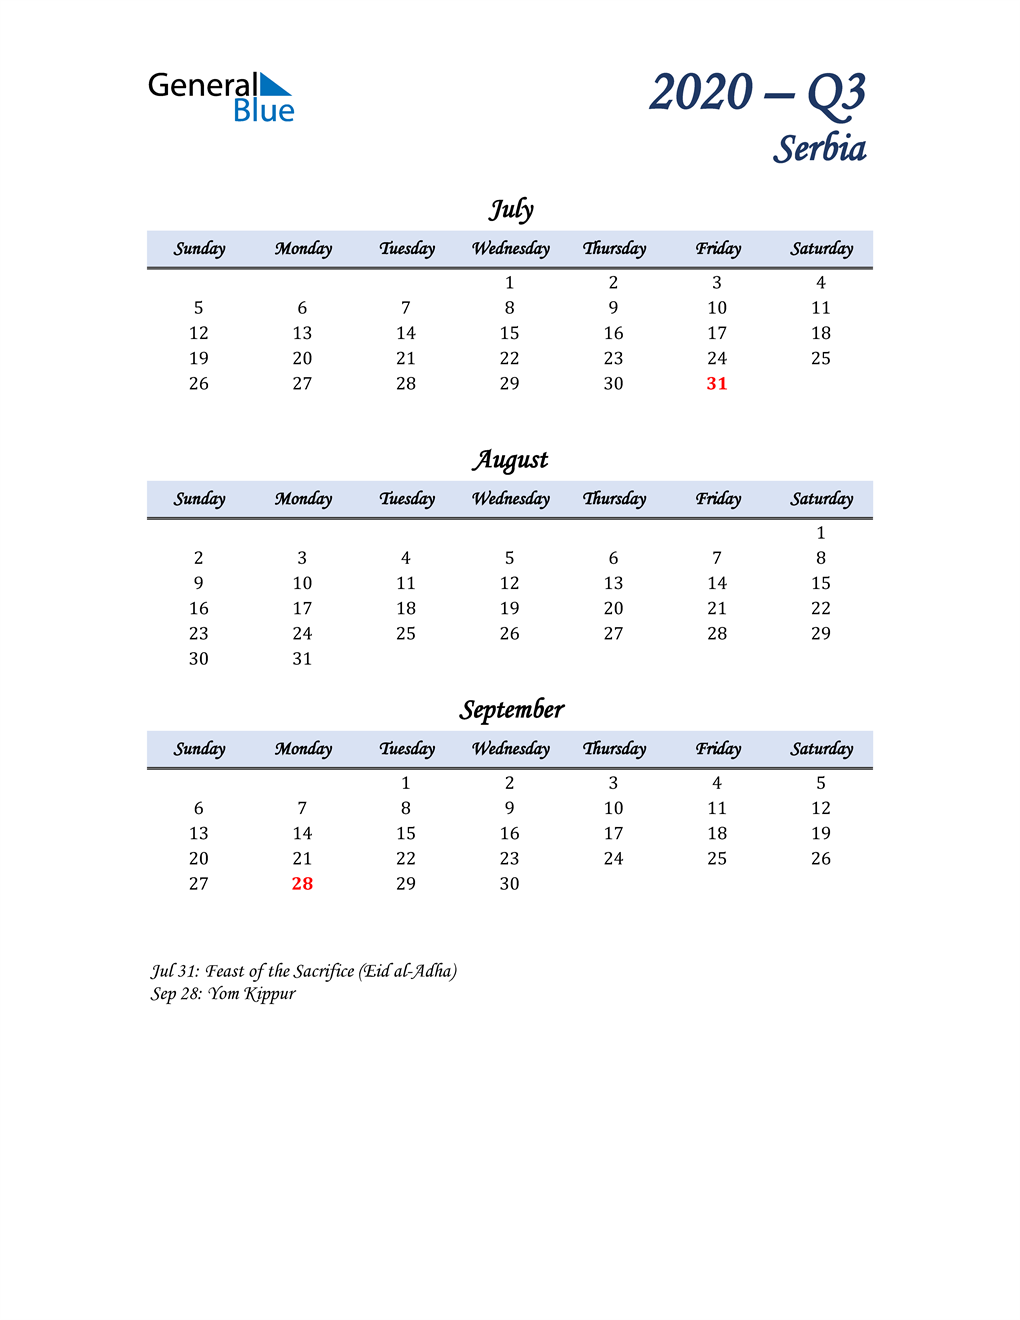 July, August, and September Calendar for Serbia